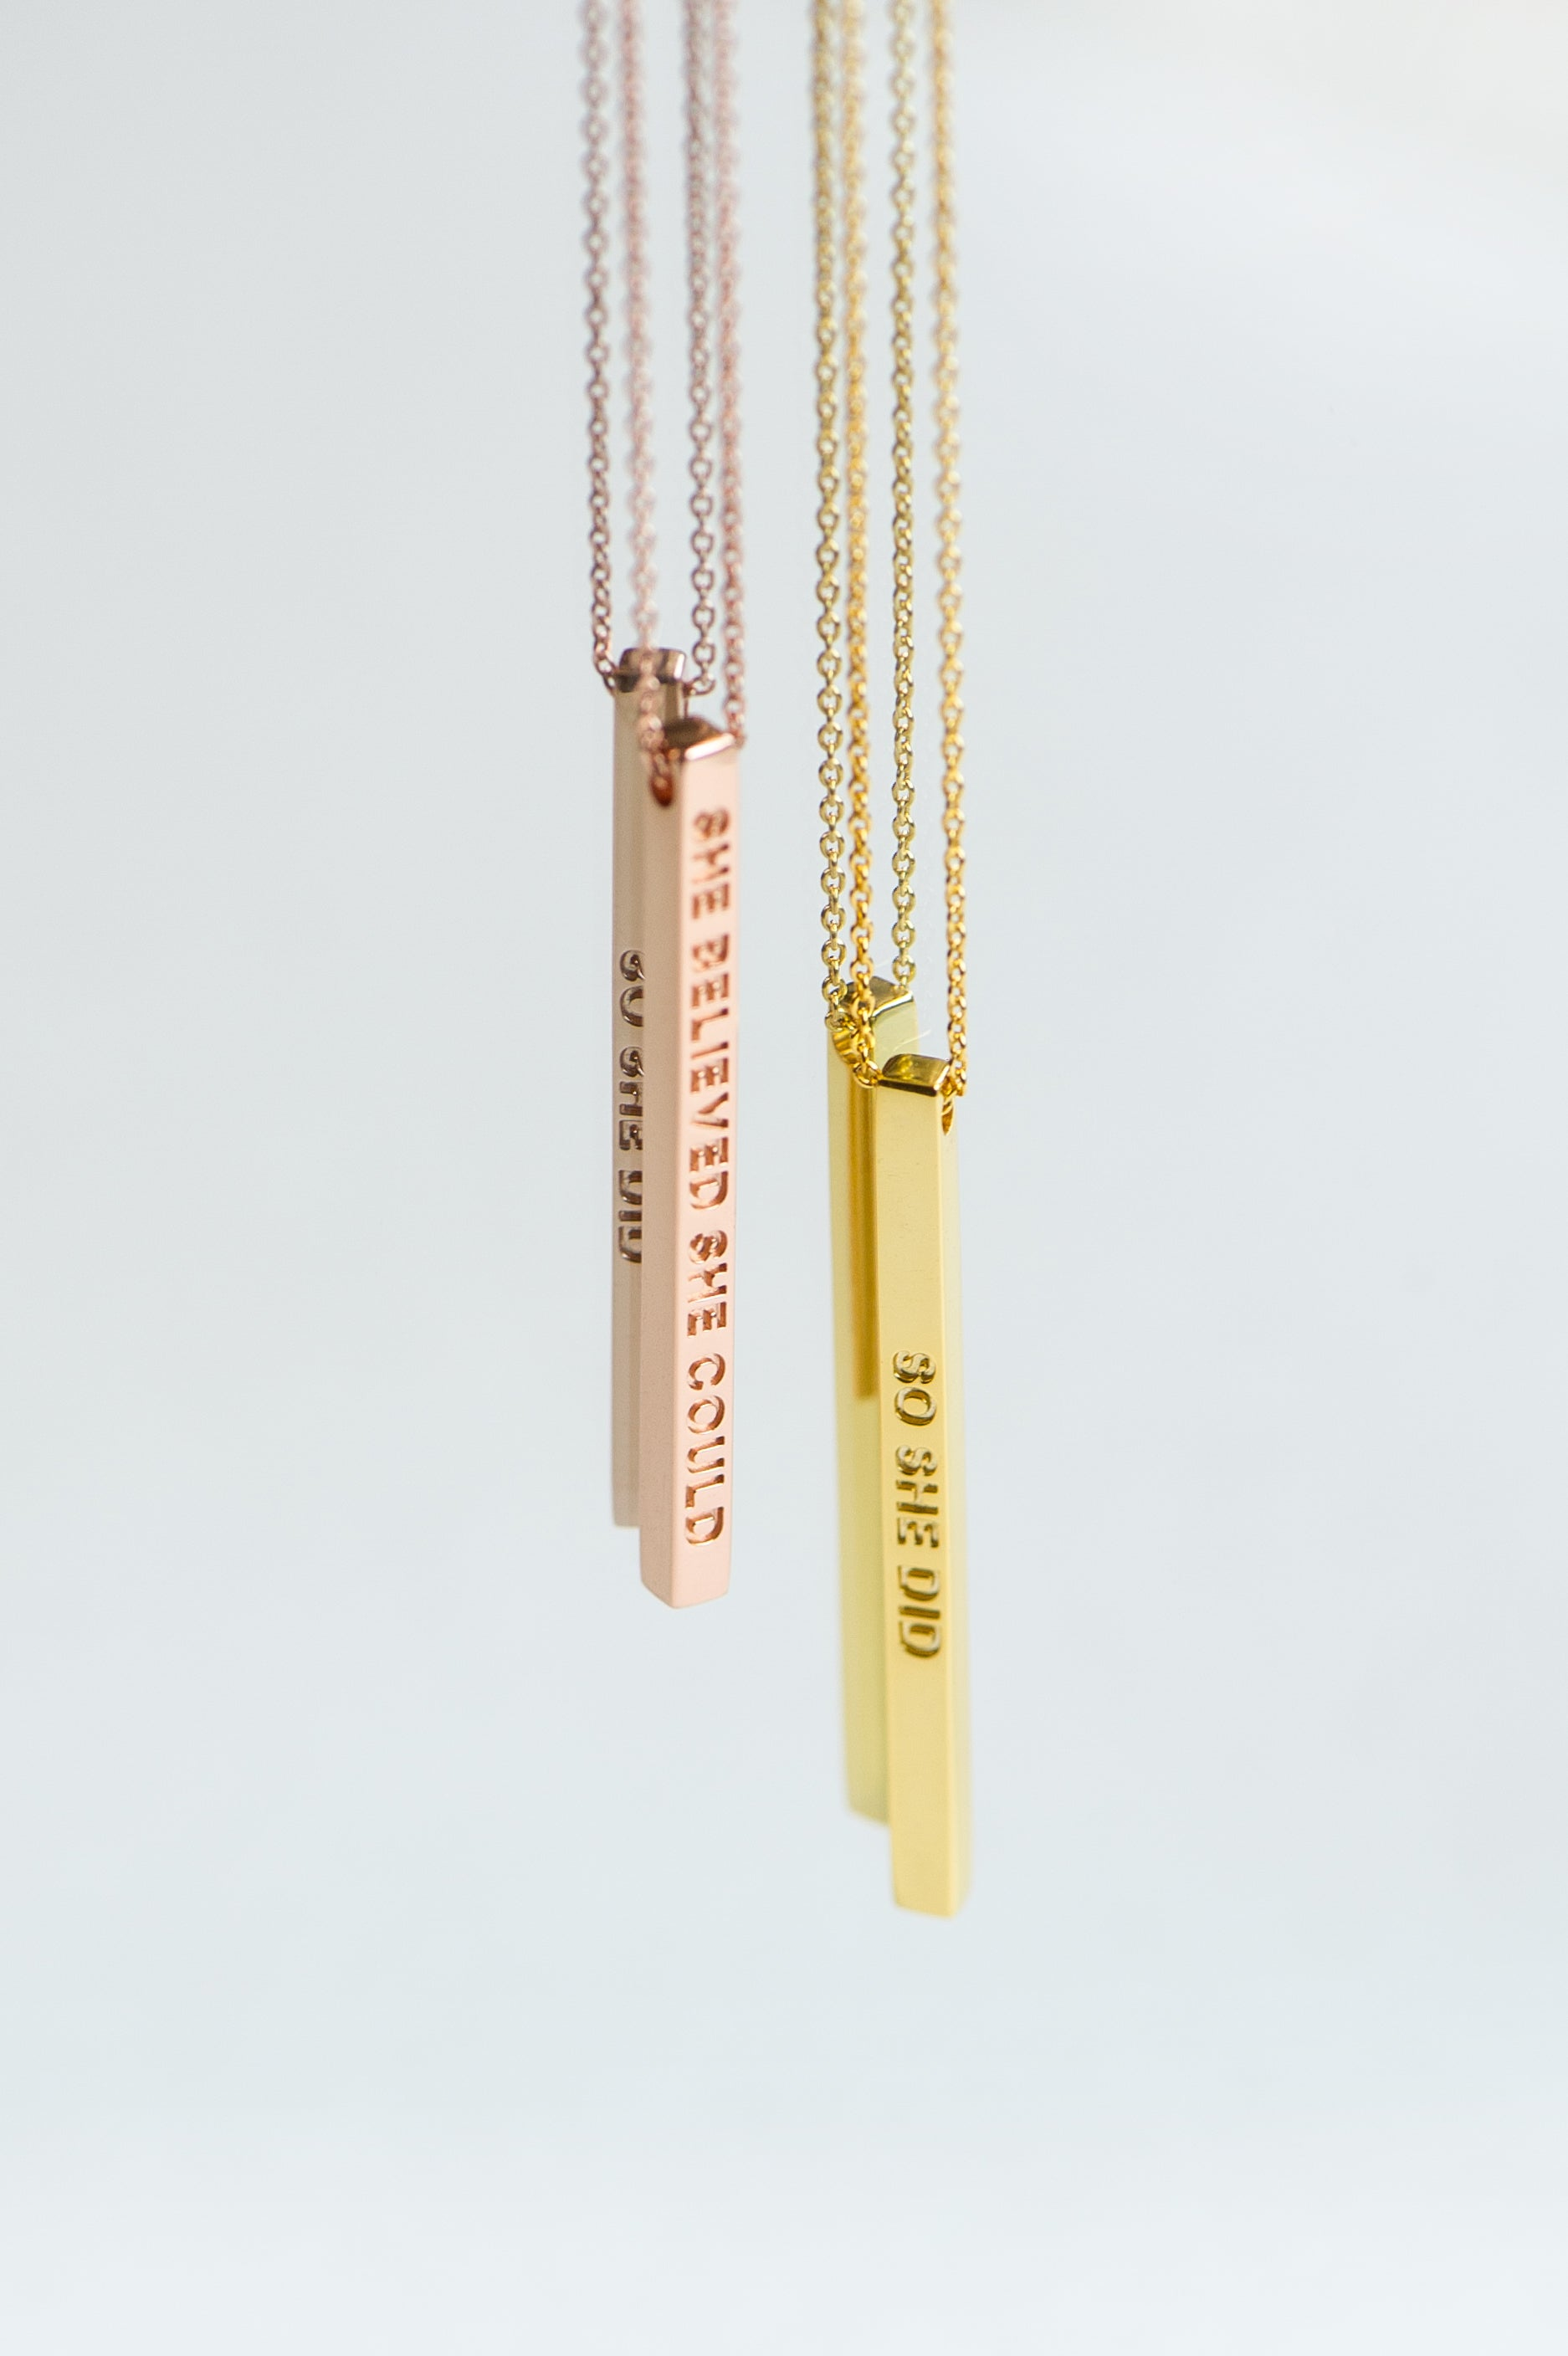 Mantra Necklaces